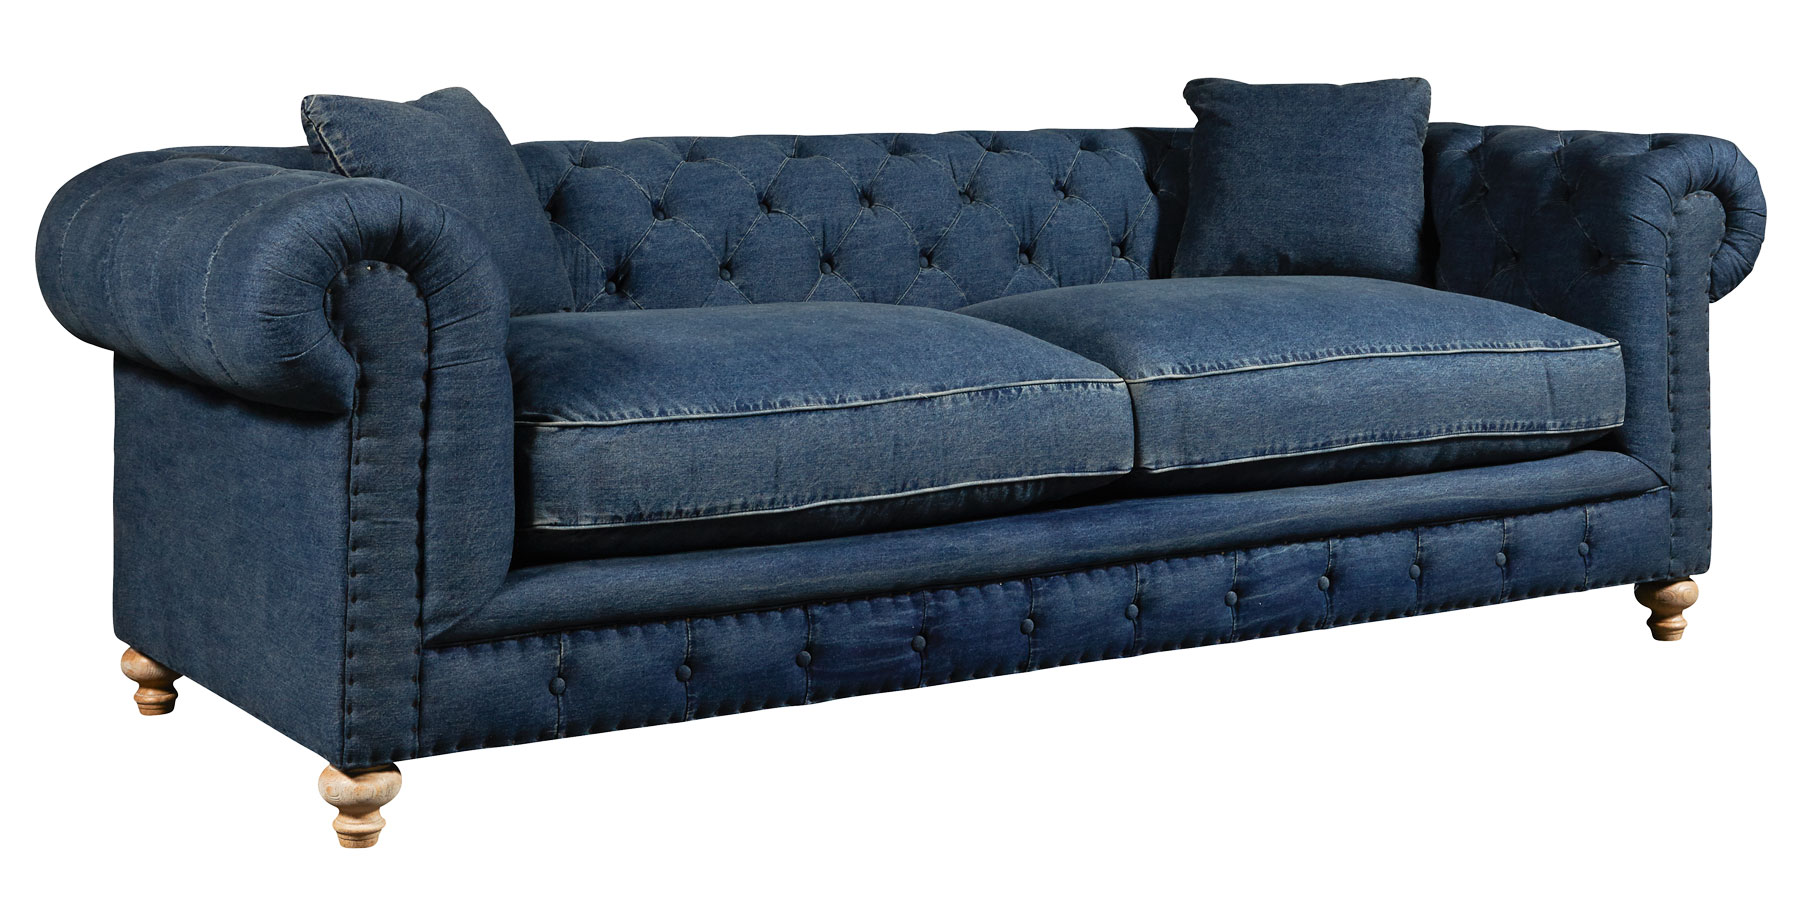 Tufted Denim Blue Jeans Chesterfield Sofa Collection